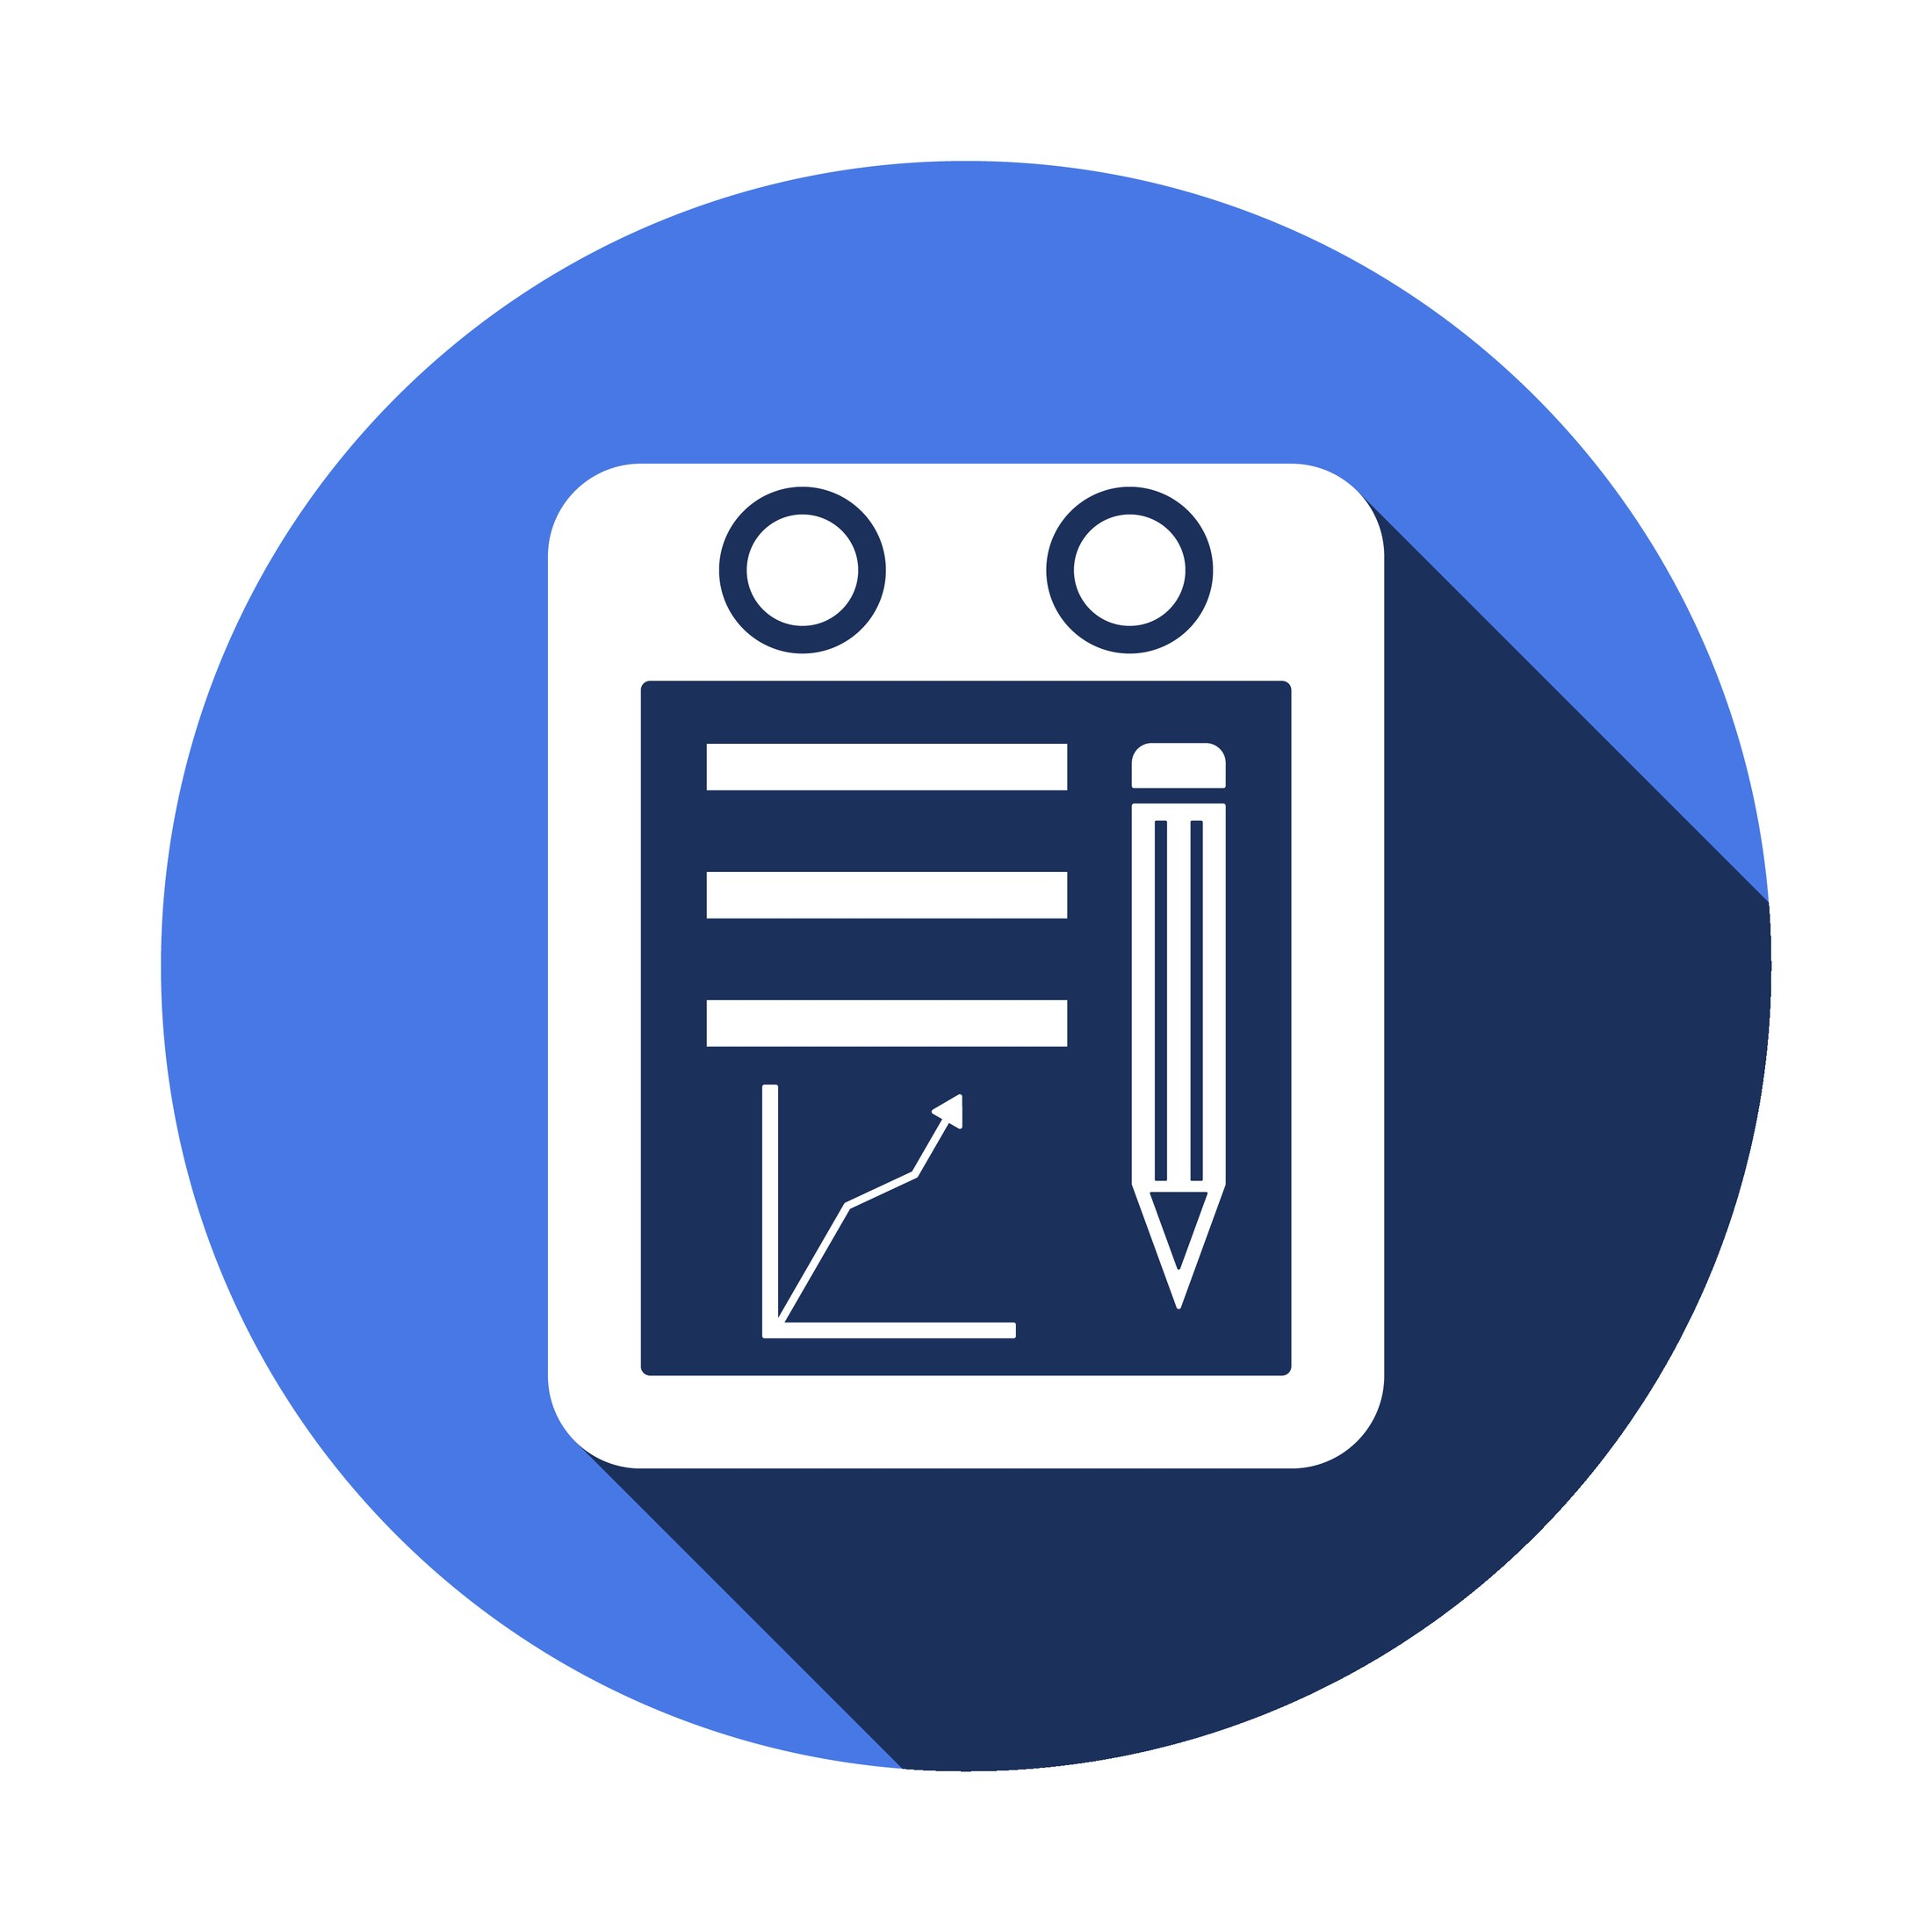 financial reports and presentations icon